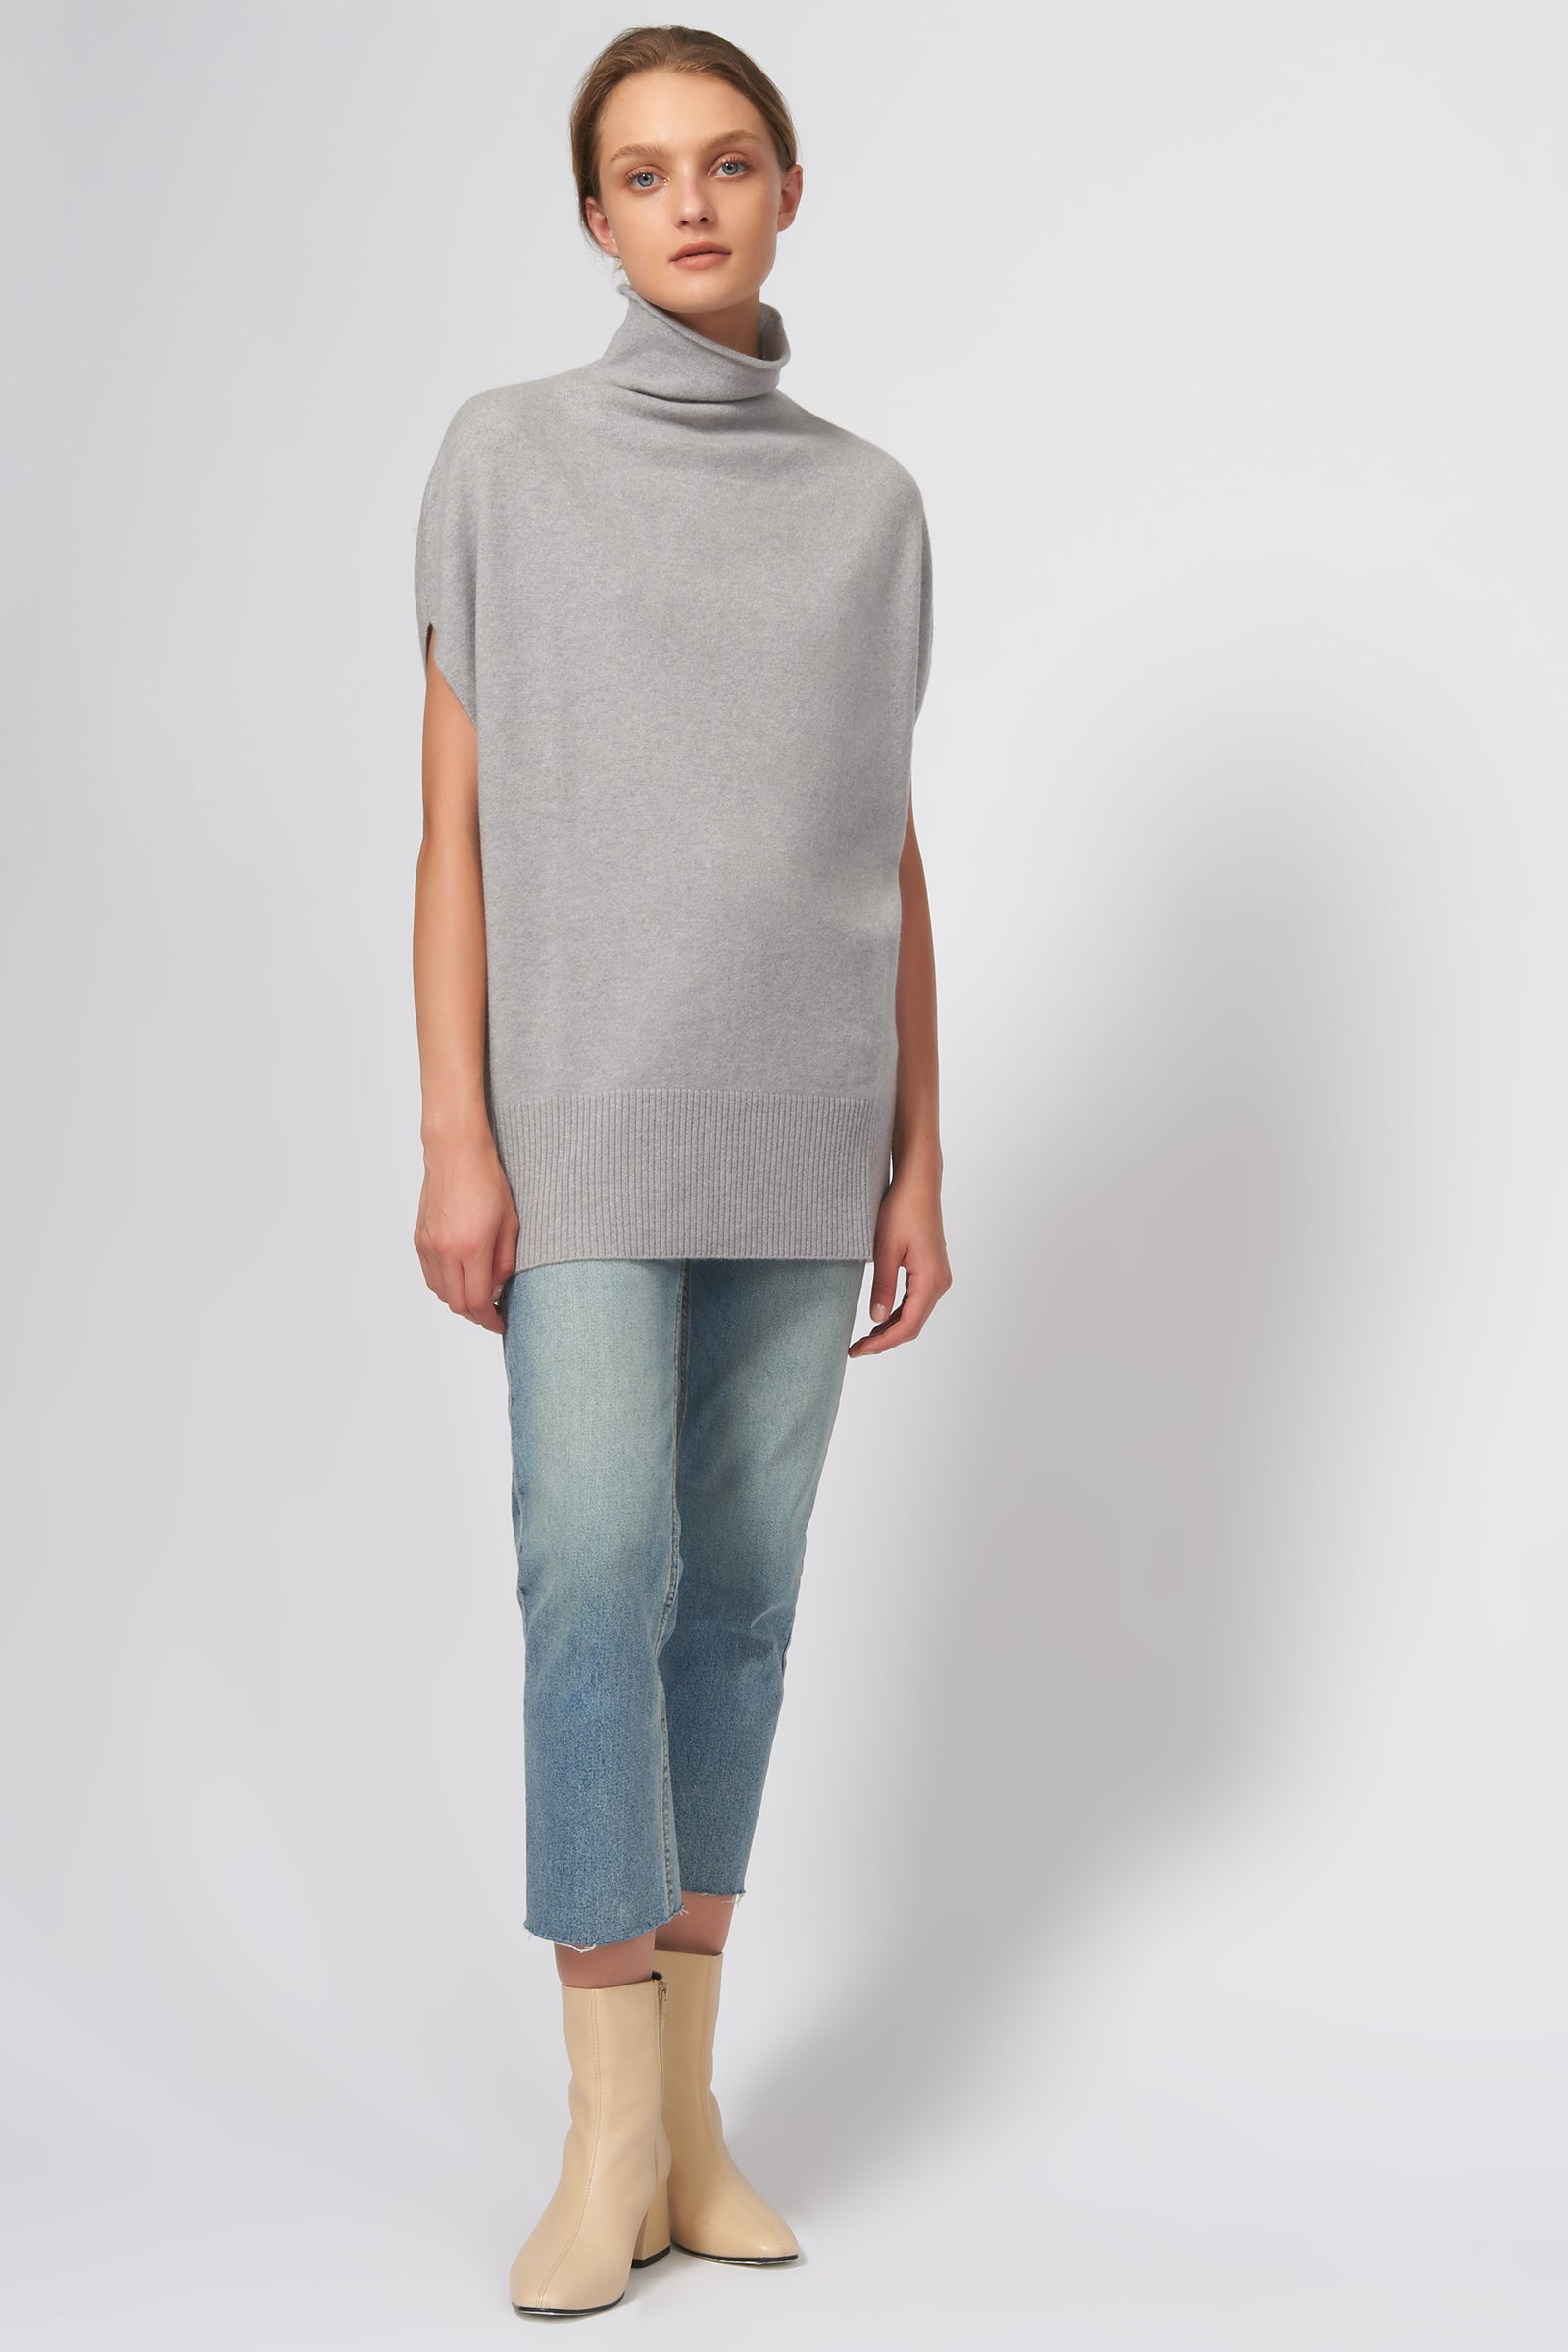 Kal Rieman Cashmere Funnelneck in Heather Grey on Model Full Front View